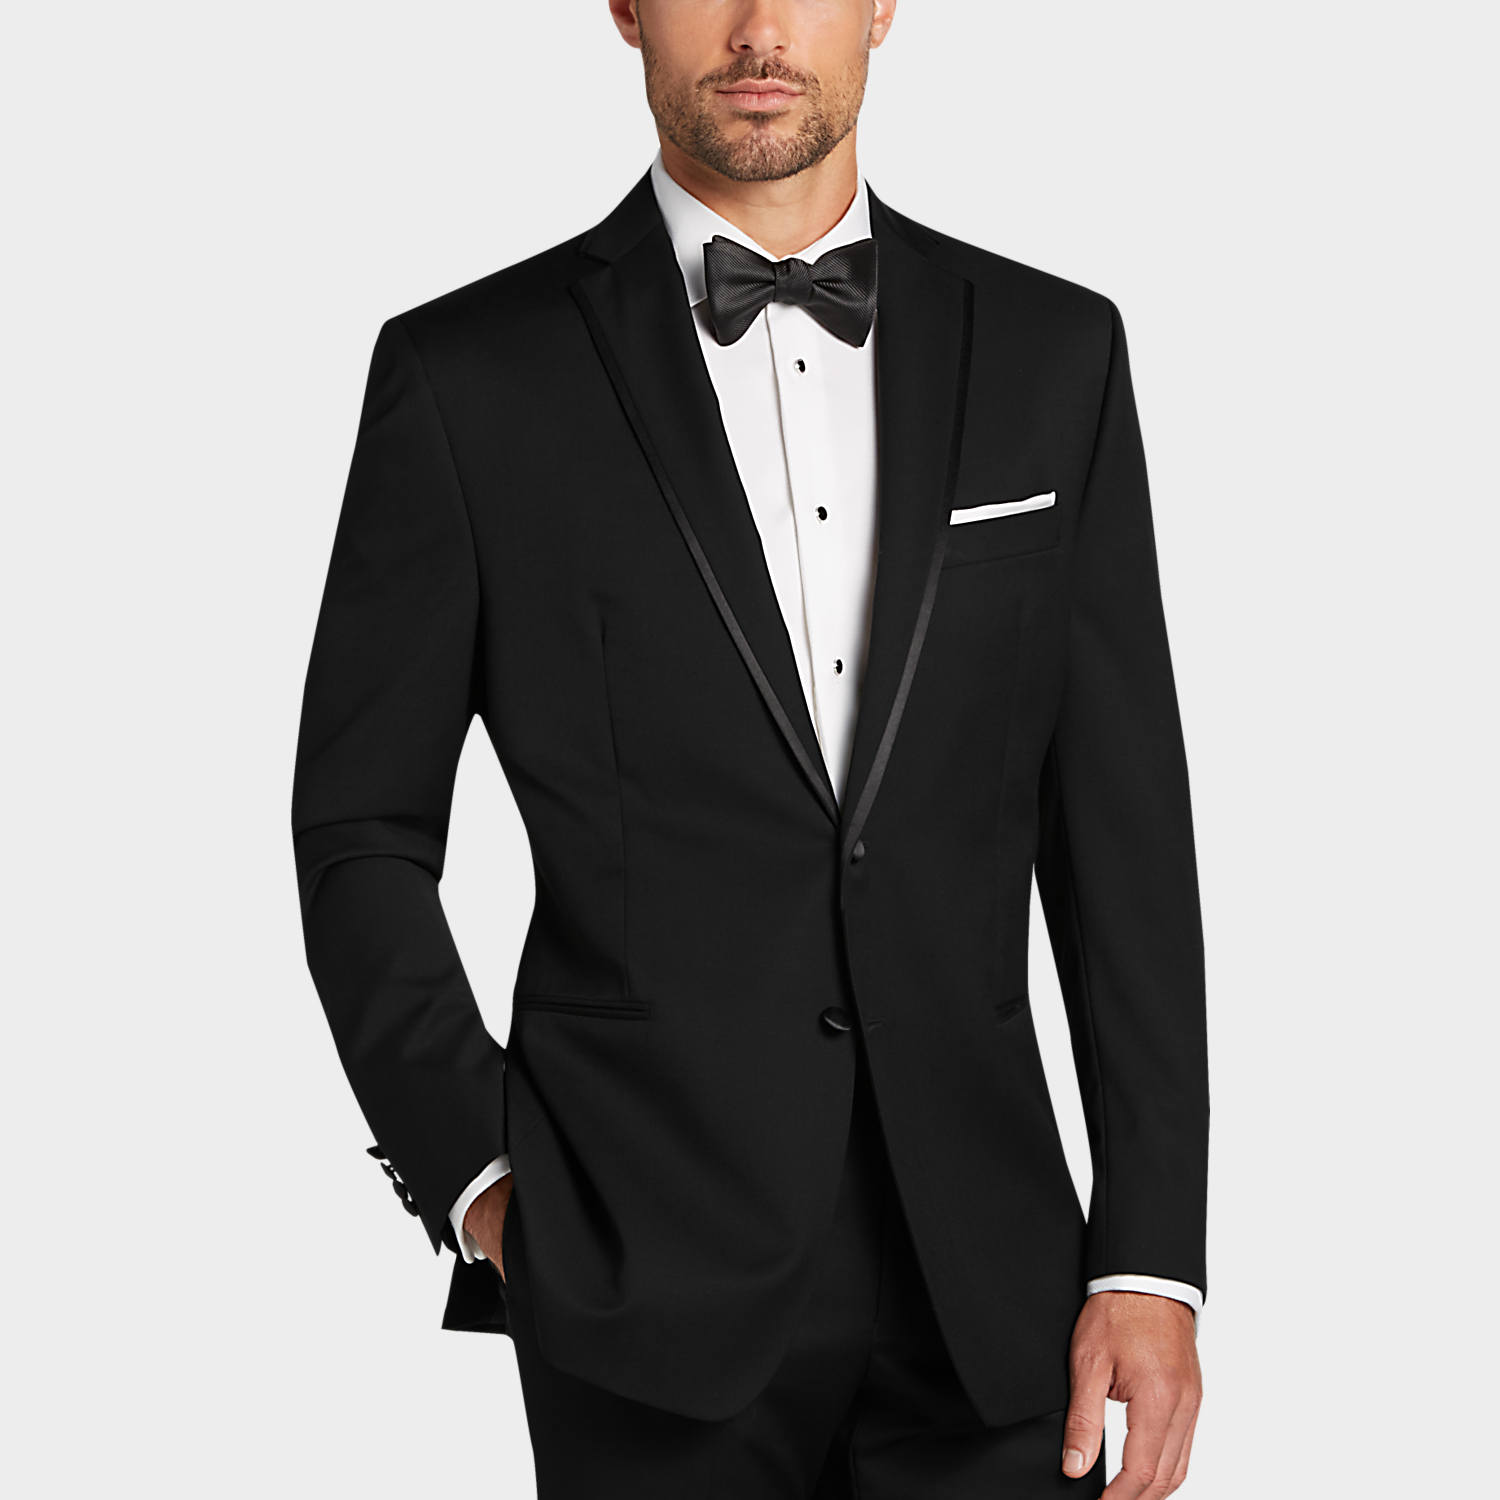 Jordan 1 suit calvin klein for Tuxedo house